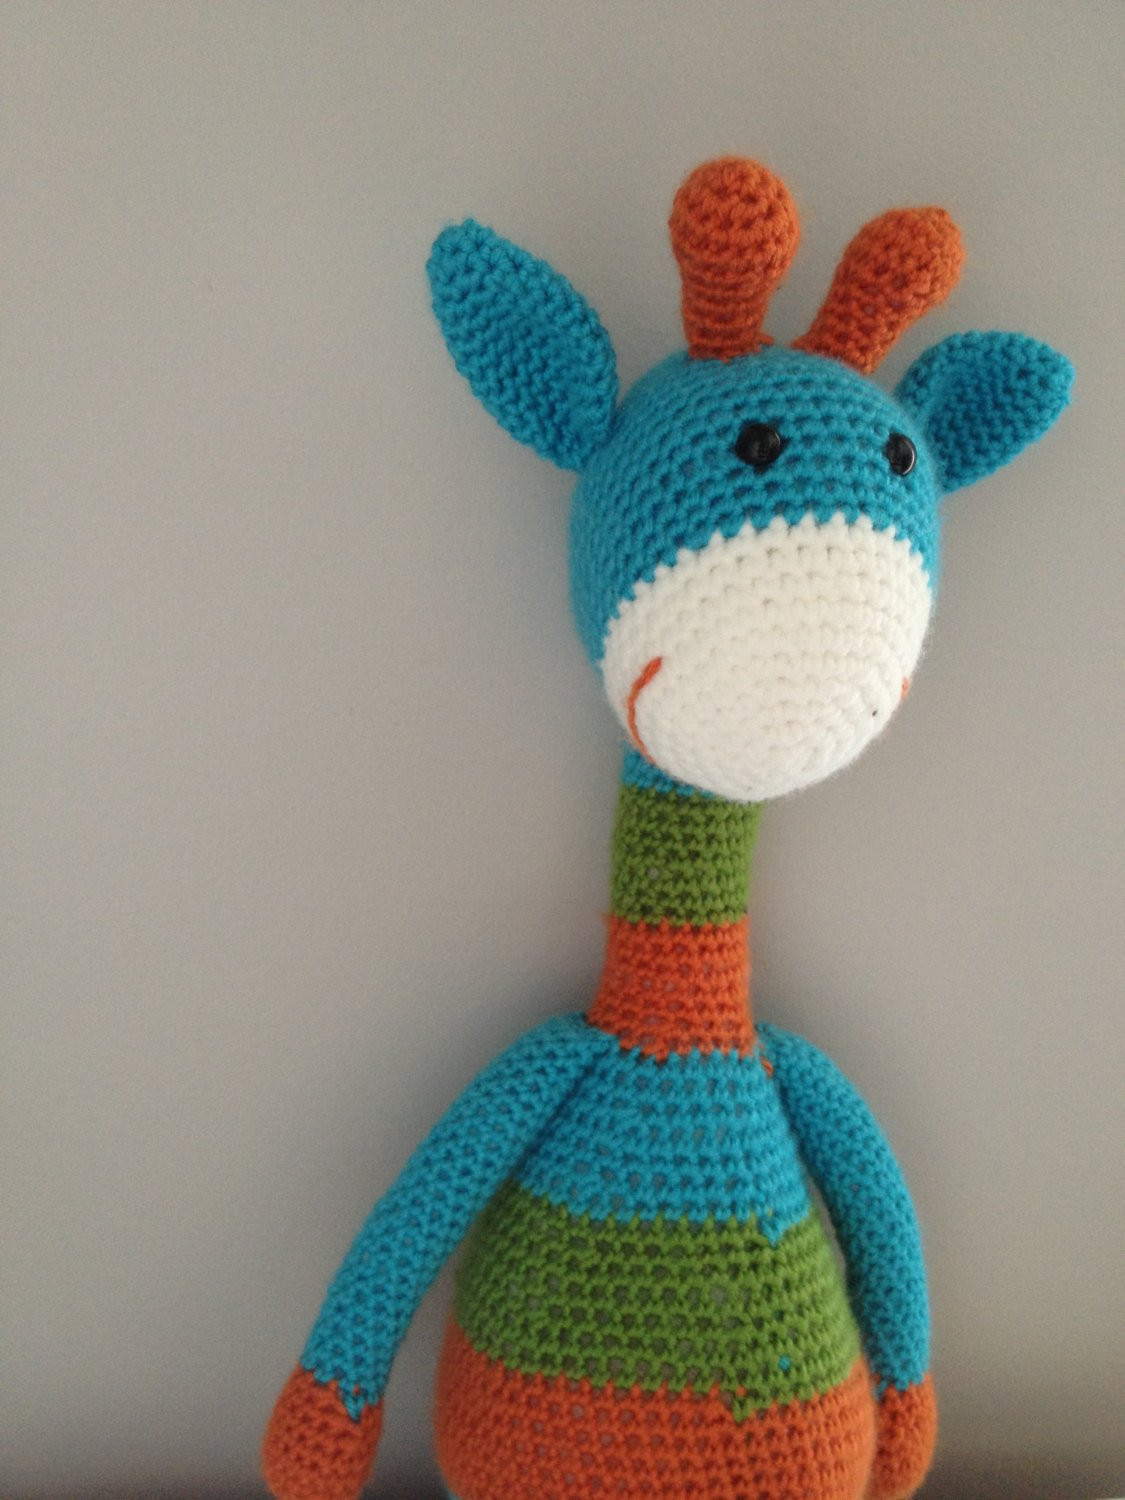 Crochet Giraffe Pattern Beautiful Pattern Joshua the Giraffe Stuffed Animal Crochet Pattern Of Marvelous 41 Ideas Crochet Giraffe Pattern